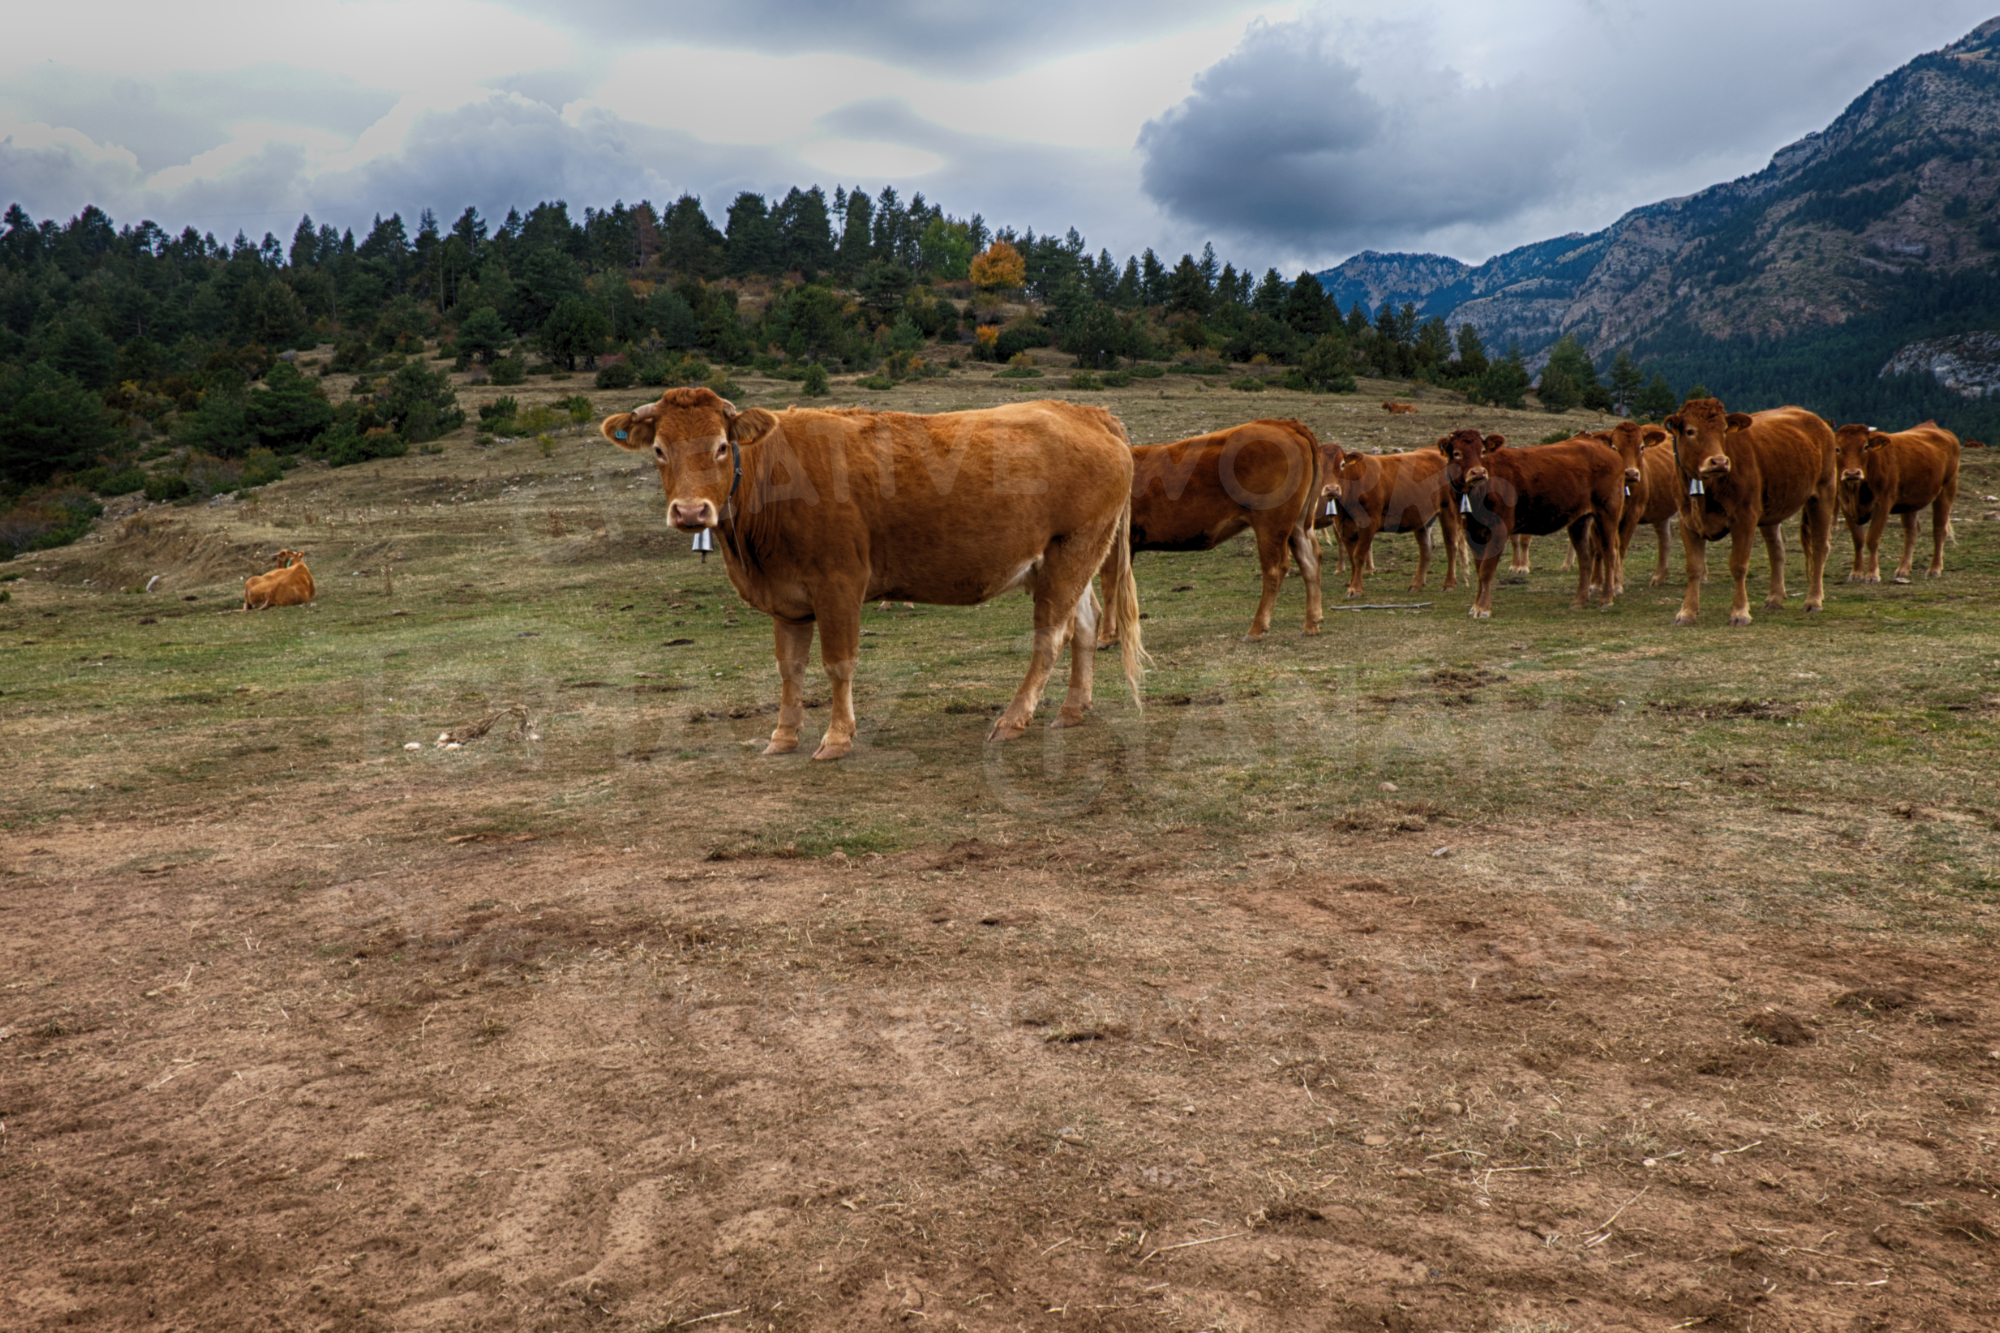 Herd Of Cows Pasting In The Mountain example image 1